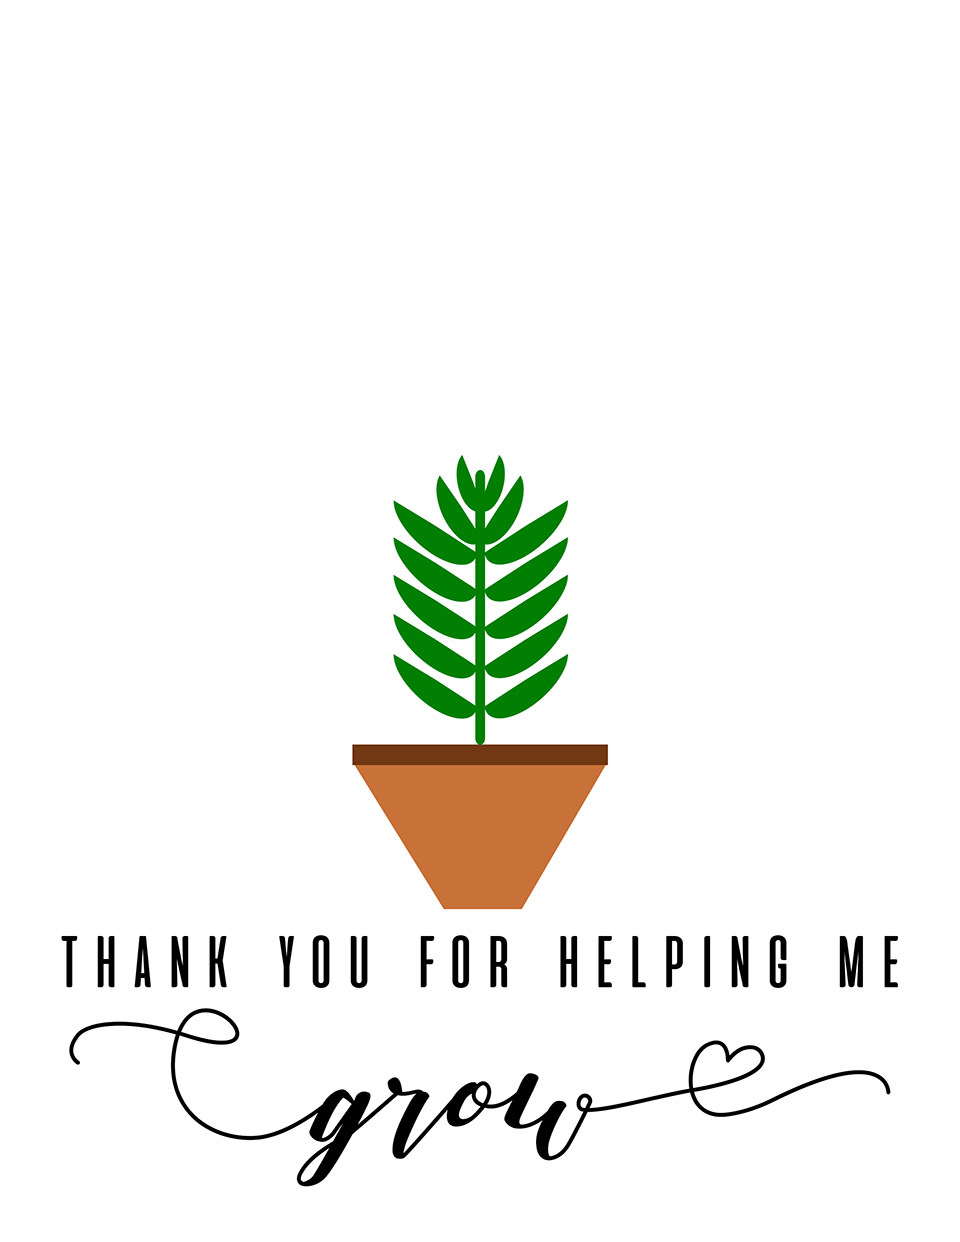 photograph about Thank You for Helping Me Grow Free Printable called thank oneself for encouraging me expand totally free printable Sarah Halstead